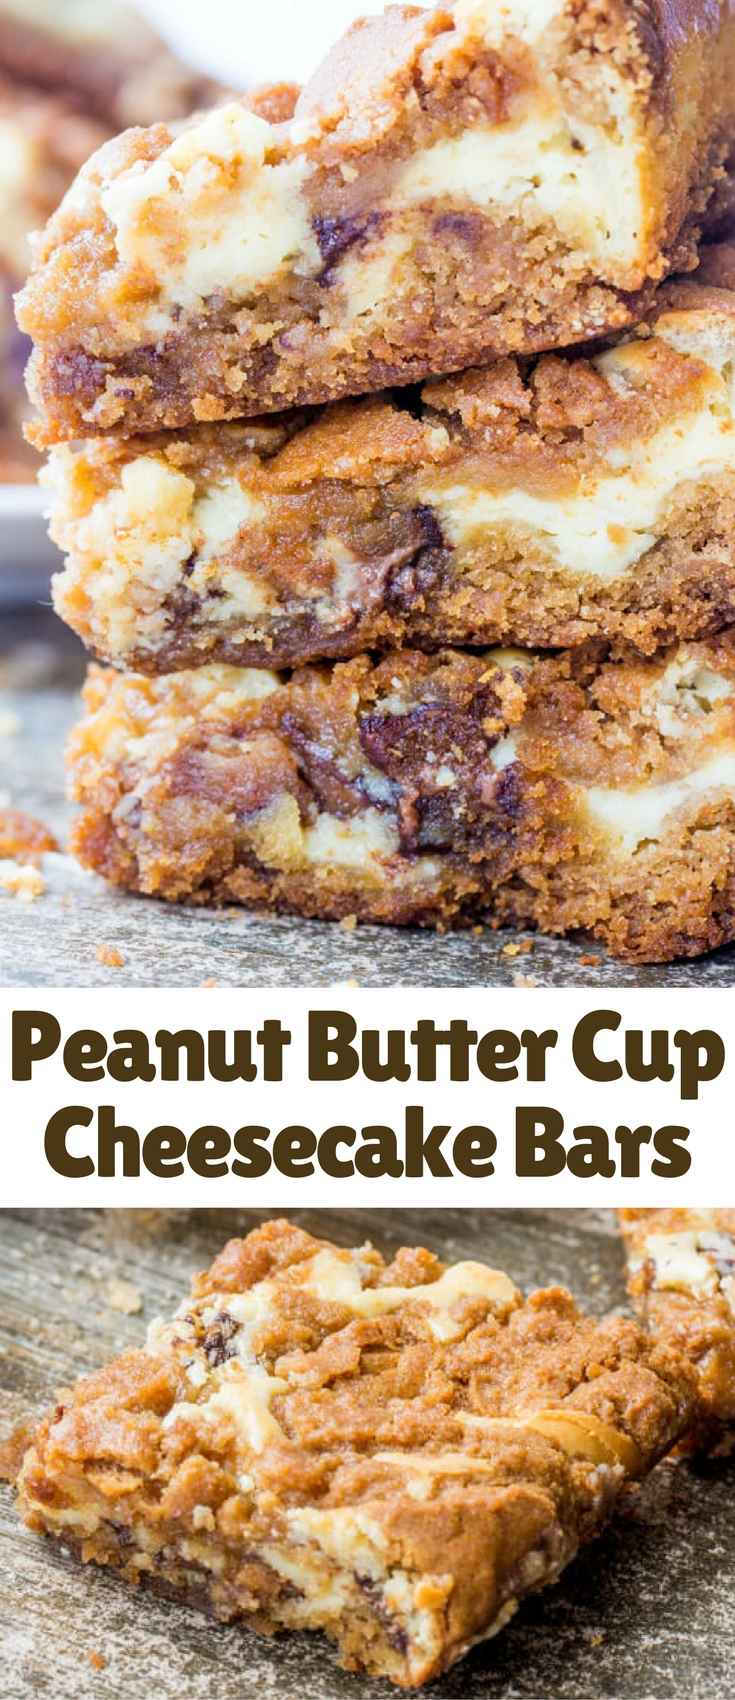 Ooey gooey and delicious these Peanut Butter Cup Cheesecake Bars mashup cookies with cheesecake with a favorite candy baked right in!